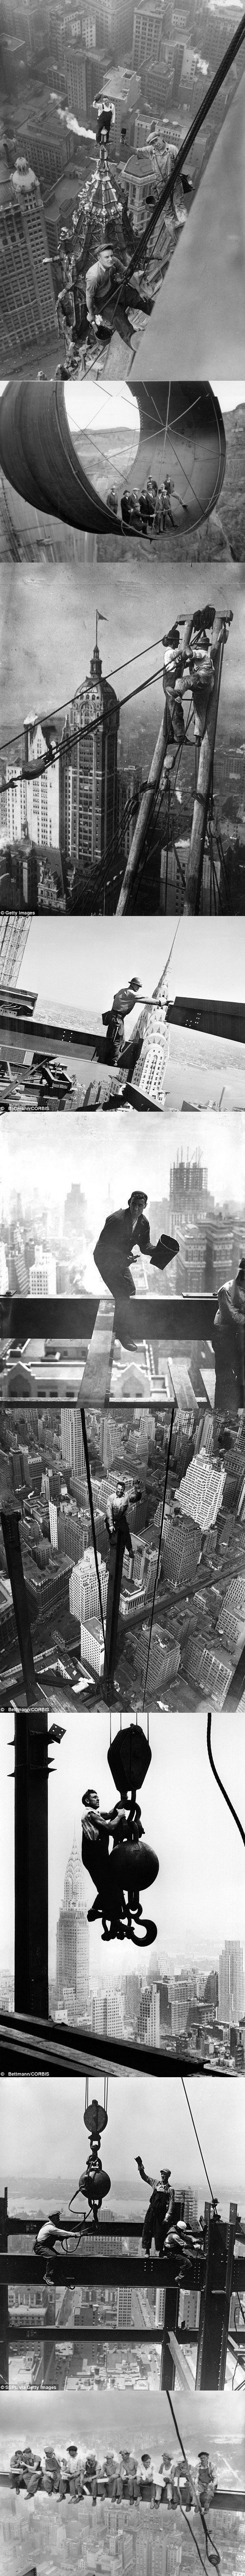 bad ass building builders in new york. old black and white photography